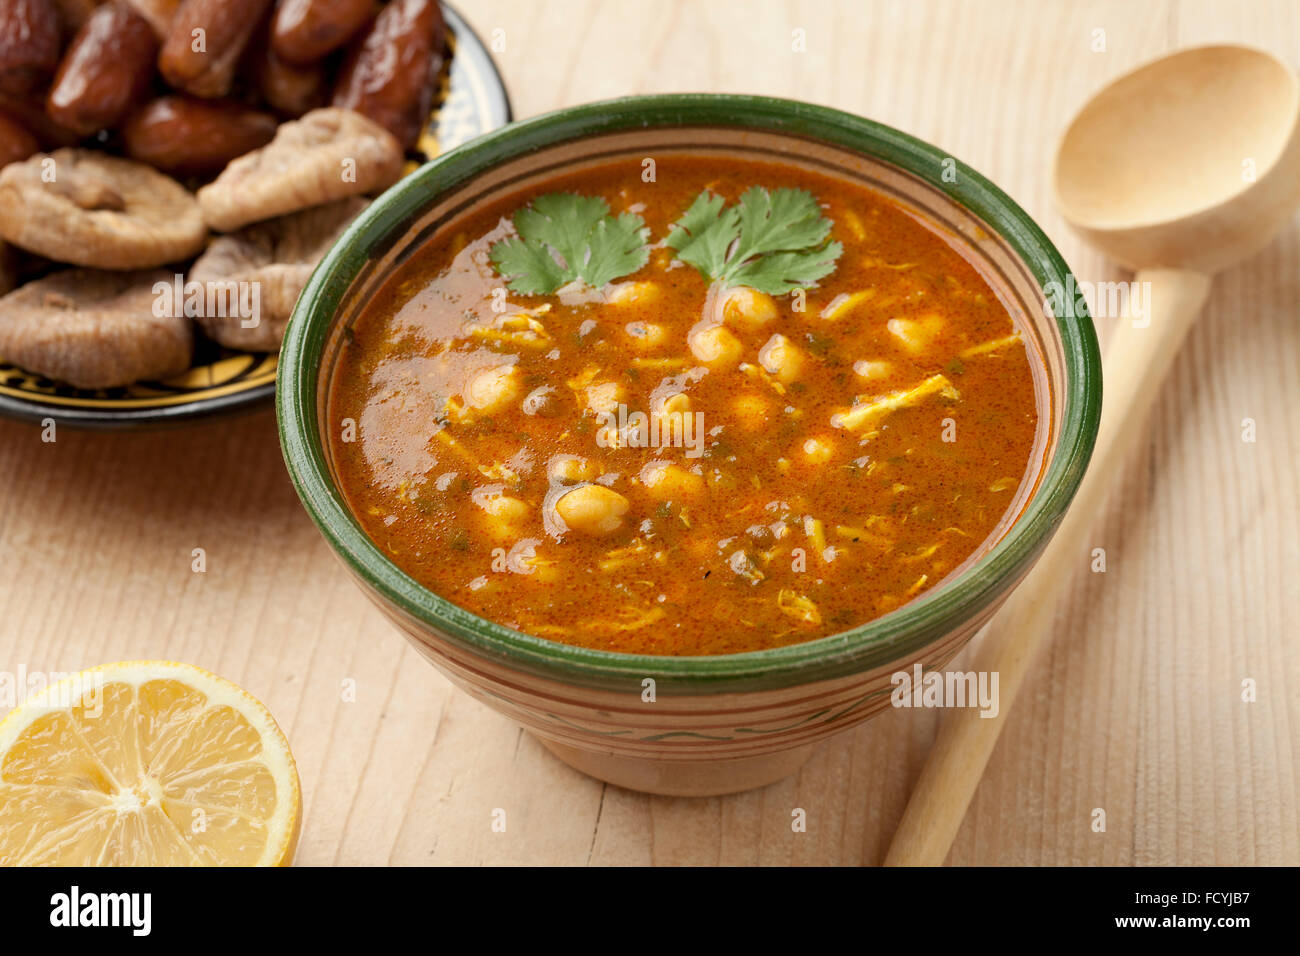 Bowl of Moroccan harira soup, lemon, dates and figs for iftar - Stock Image